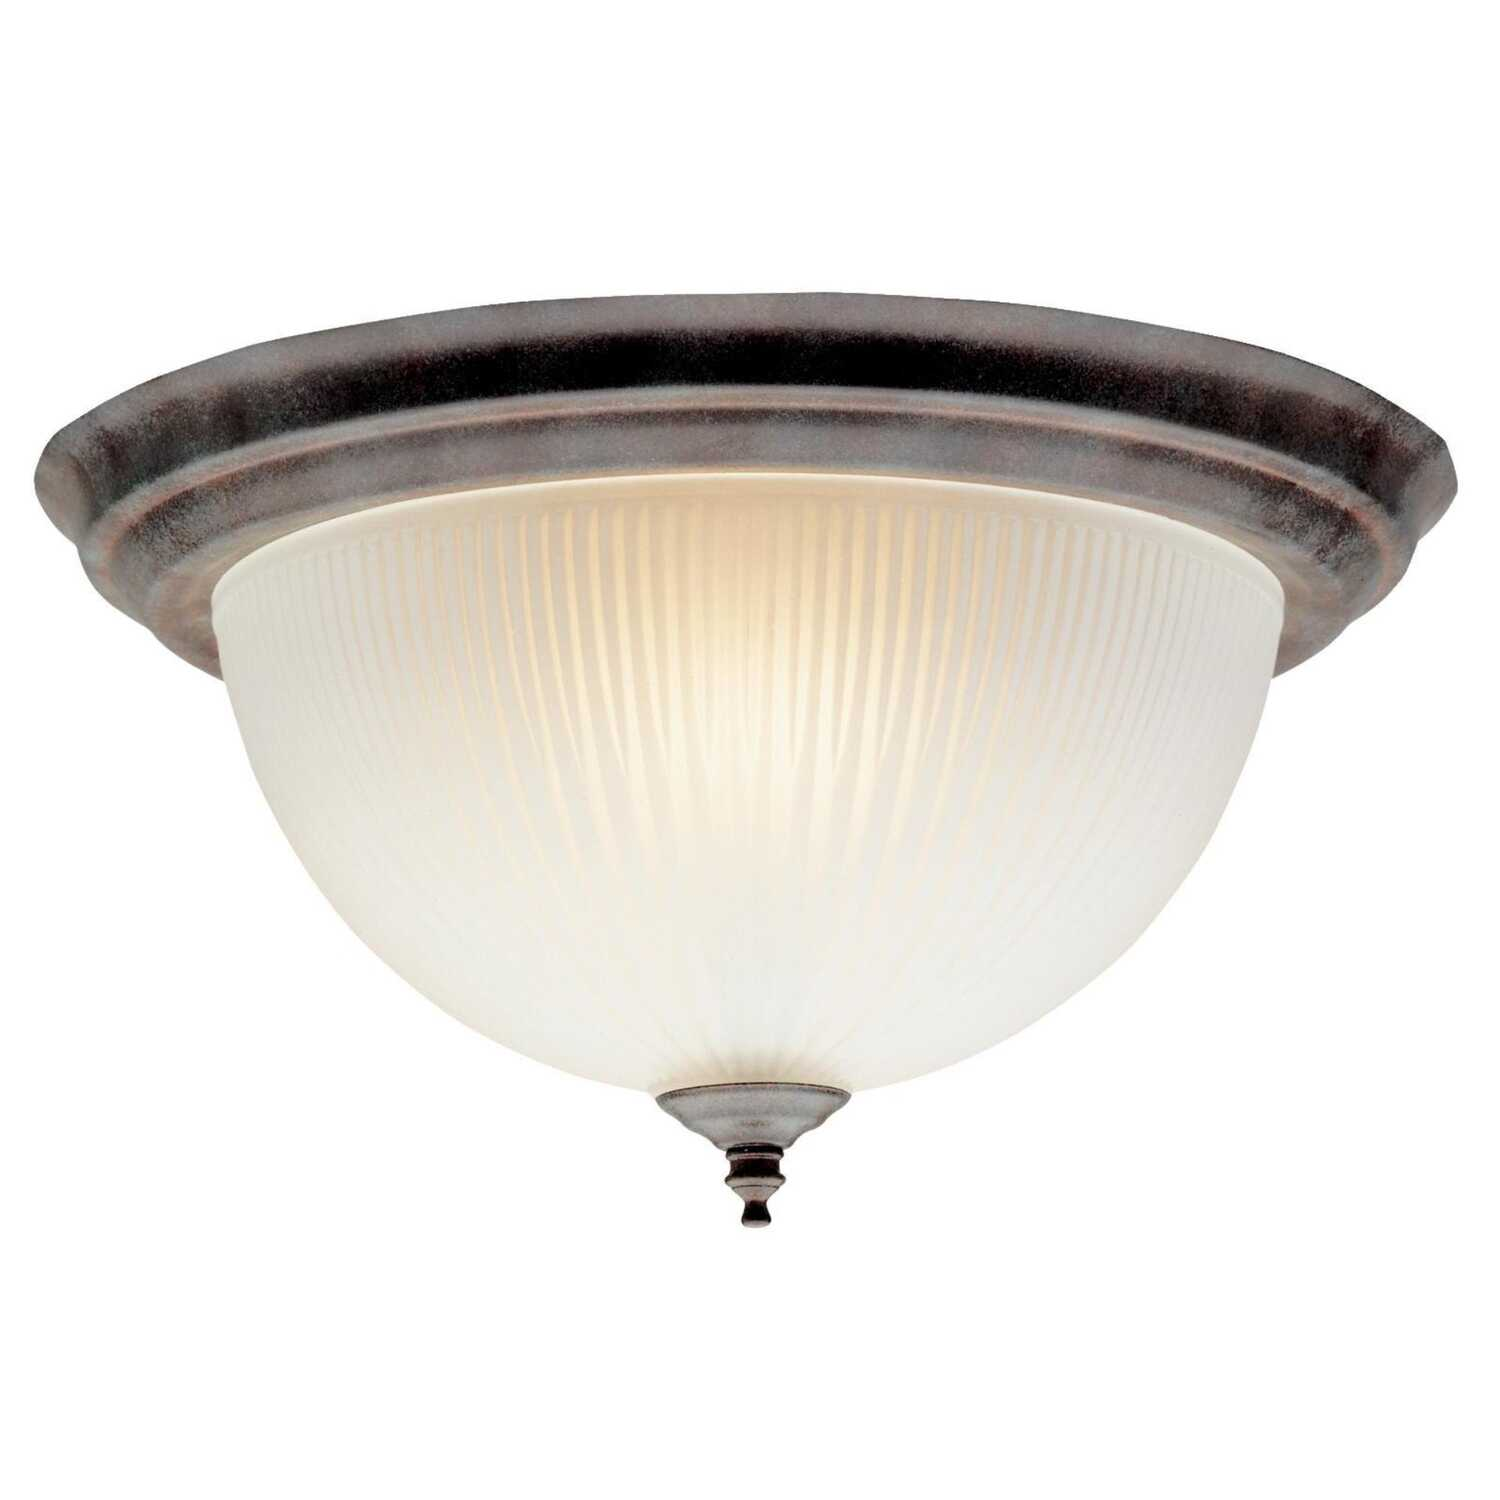 Westinghouse  13-1/4 in. W x 14 in. L x 7-1/2 in. H Ceiling Light